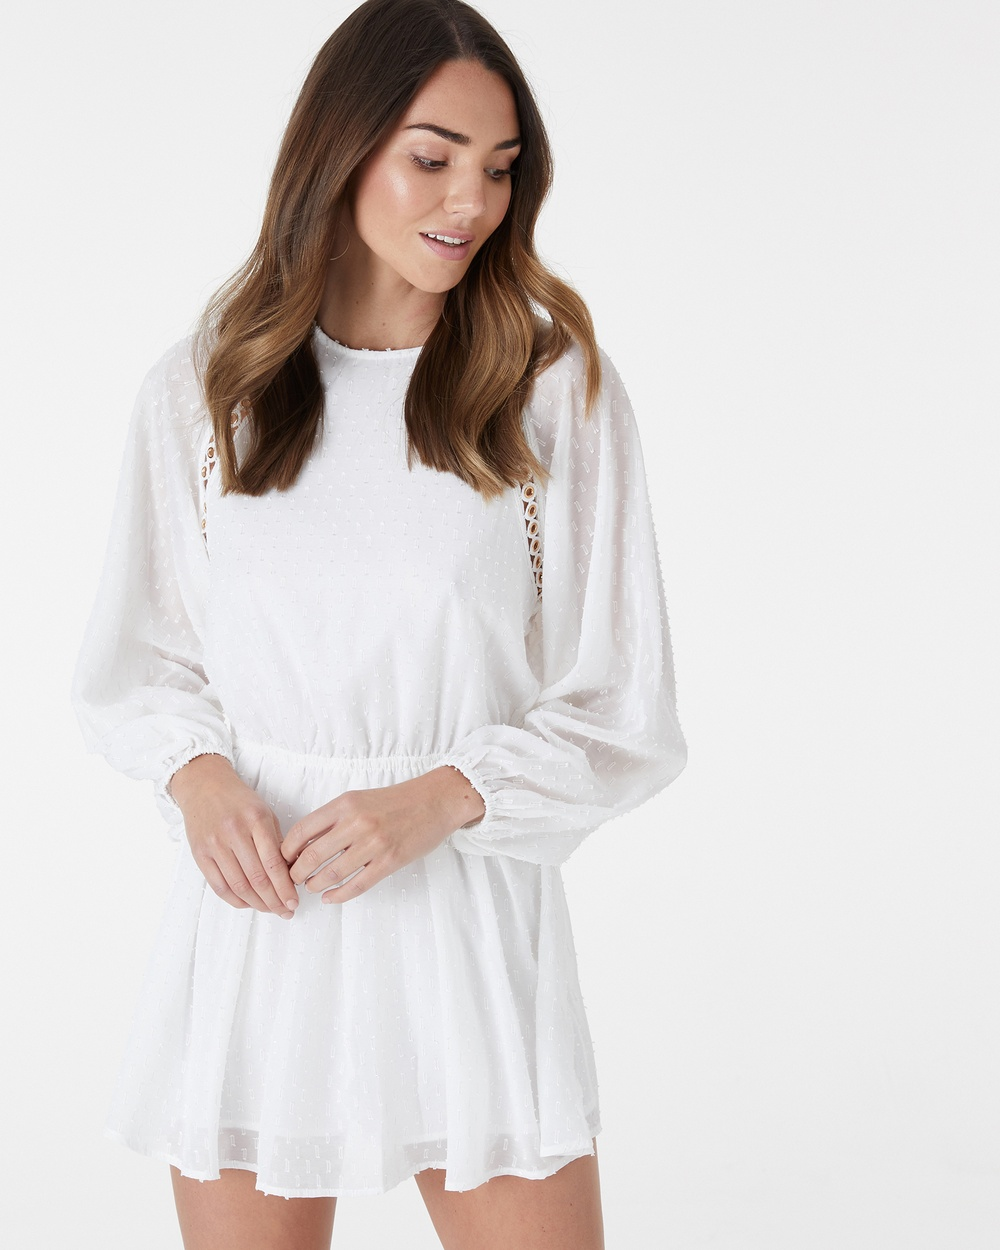 Everly Collective Be The One Dress Dresses White Be The One Dress